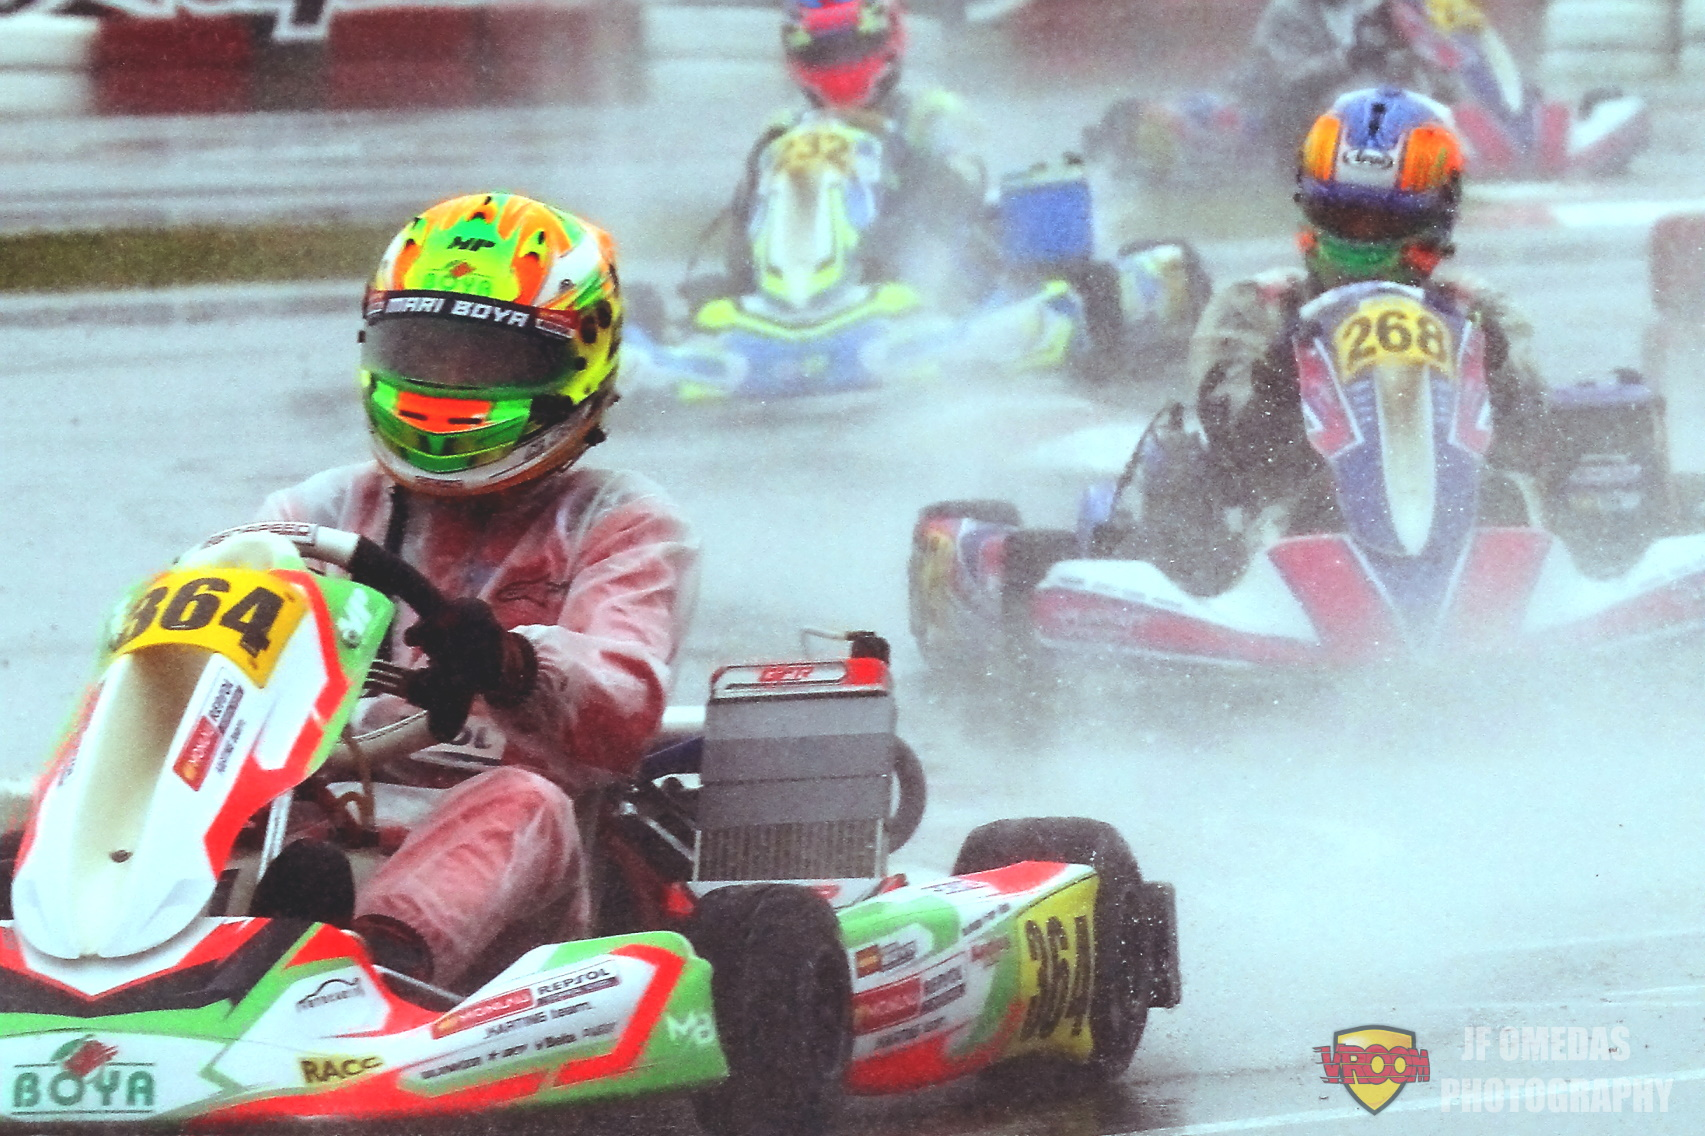 Iame Winter Cup Senior - Luchando contra los elementos hasta el final